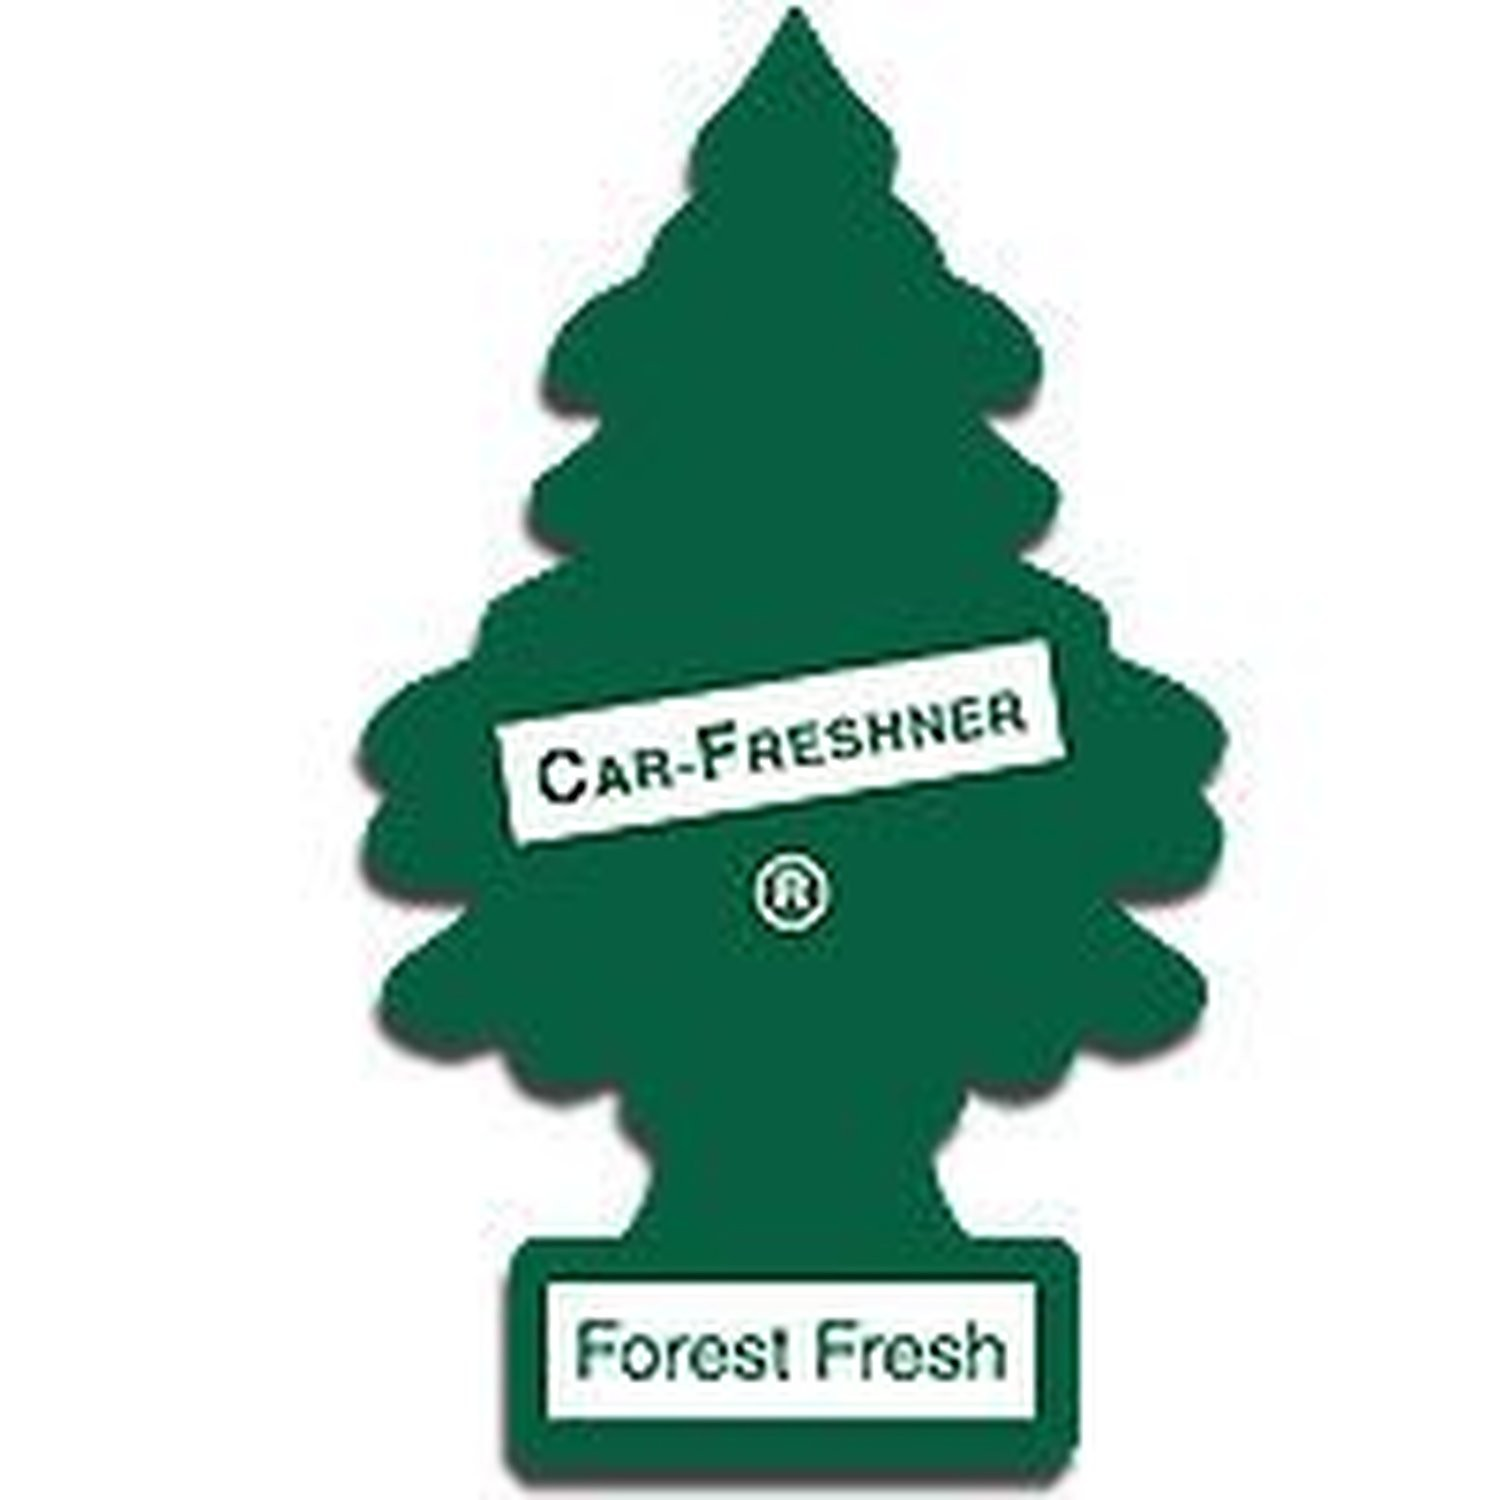 AoE Performance Magic Tree Car Air Freshener Duo Gift Pack Forest Fresh And Lavender